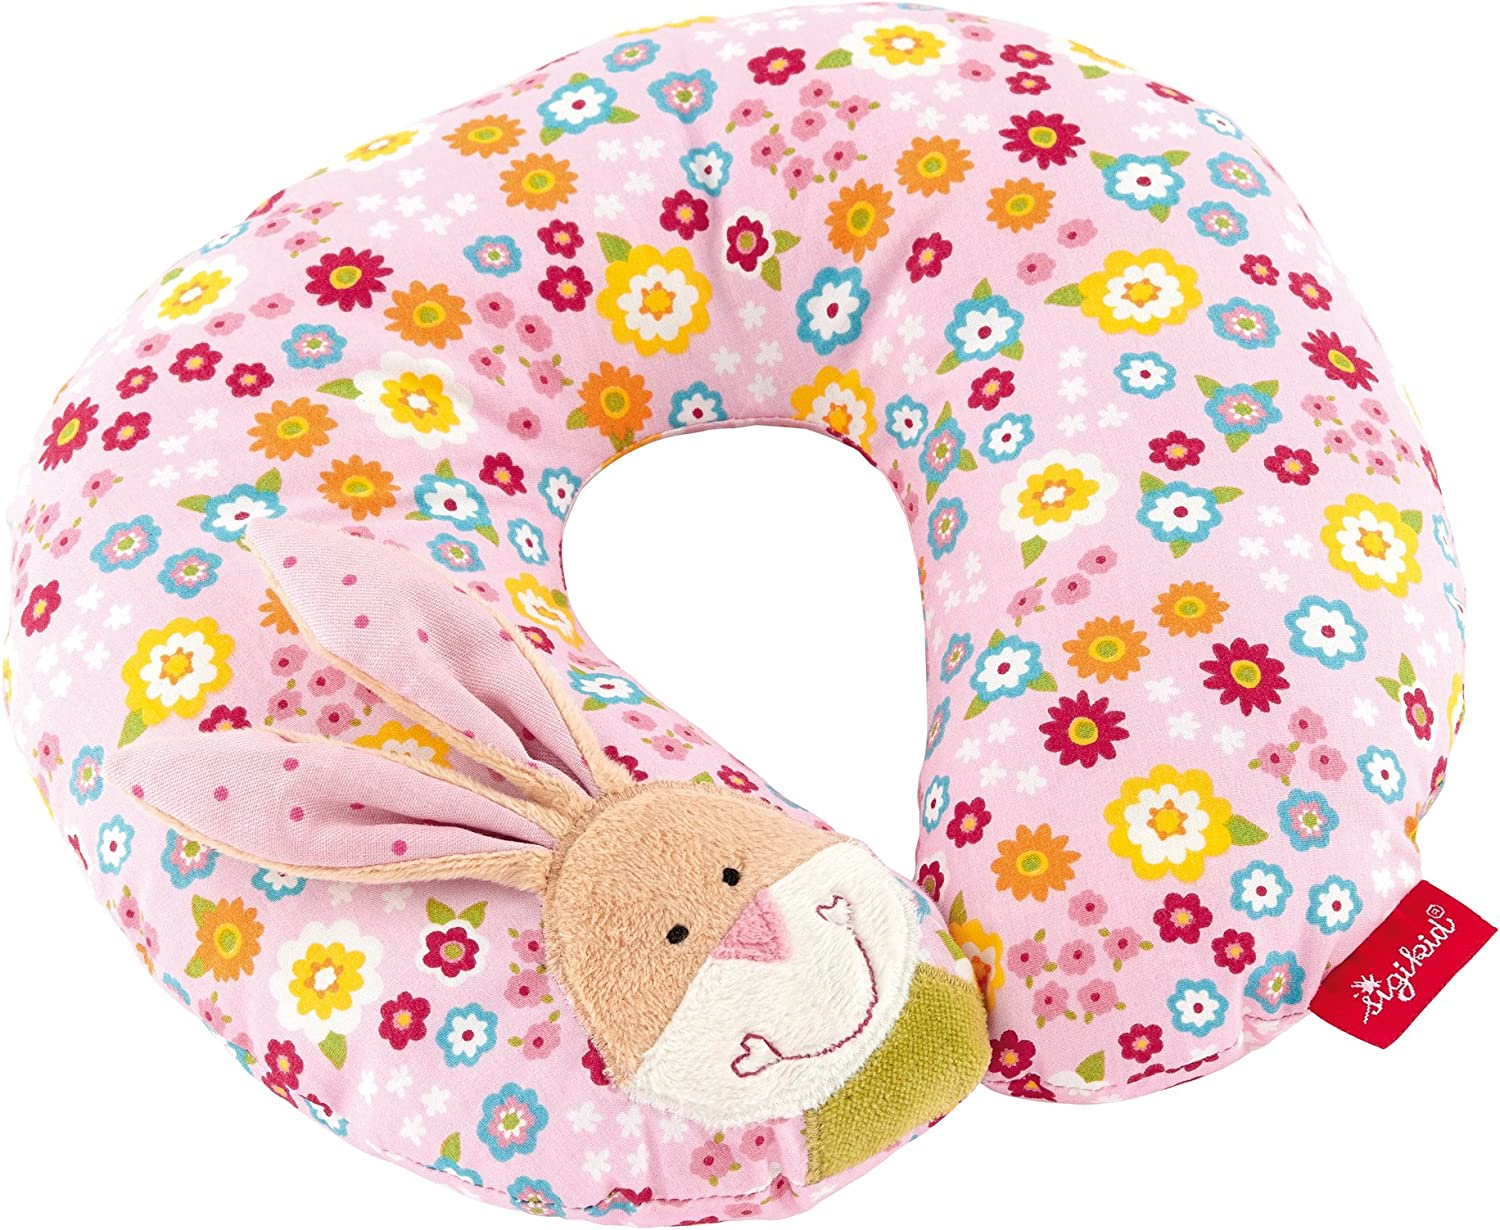 40835 Coussin Repose Cou Lapin Rose//Multicolore Fille sigikid Bungee Bunny